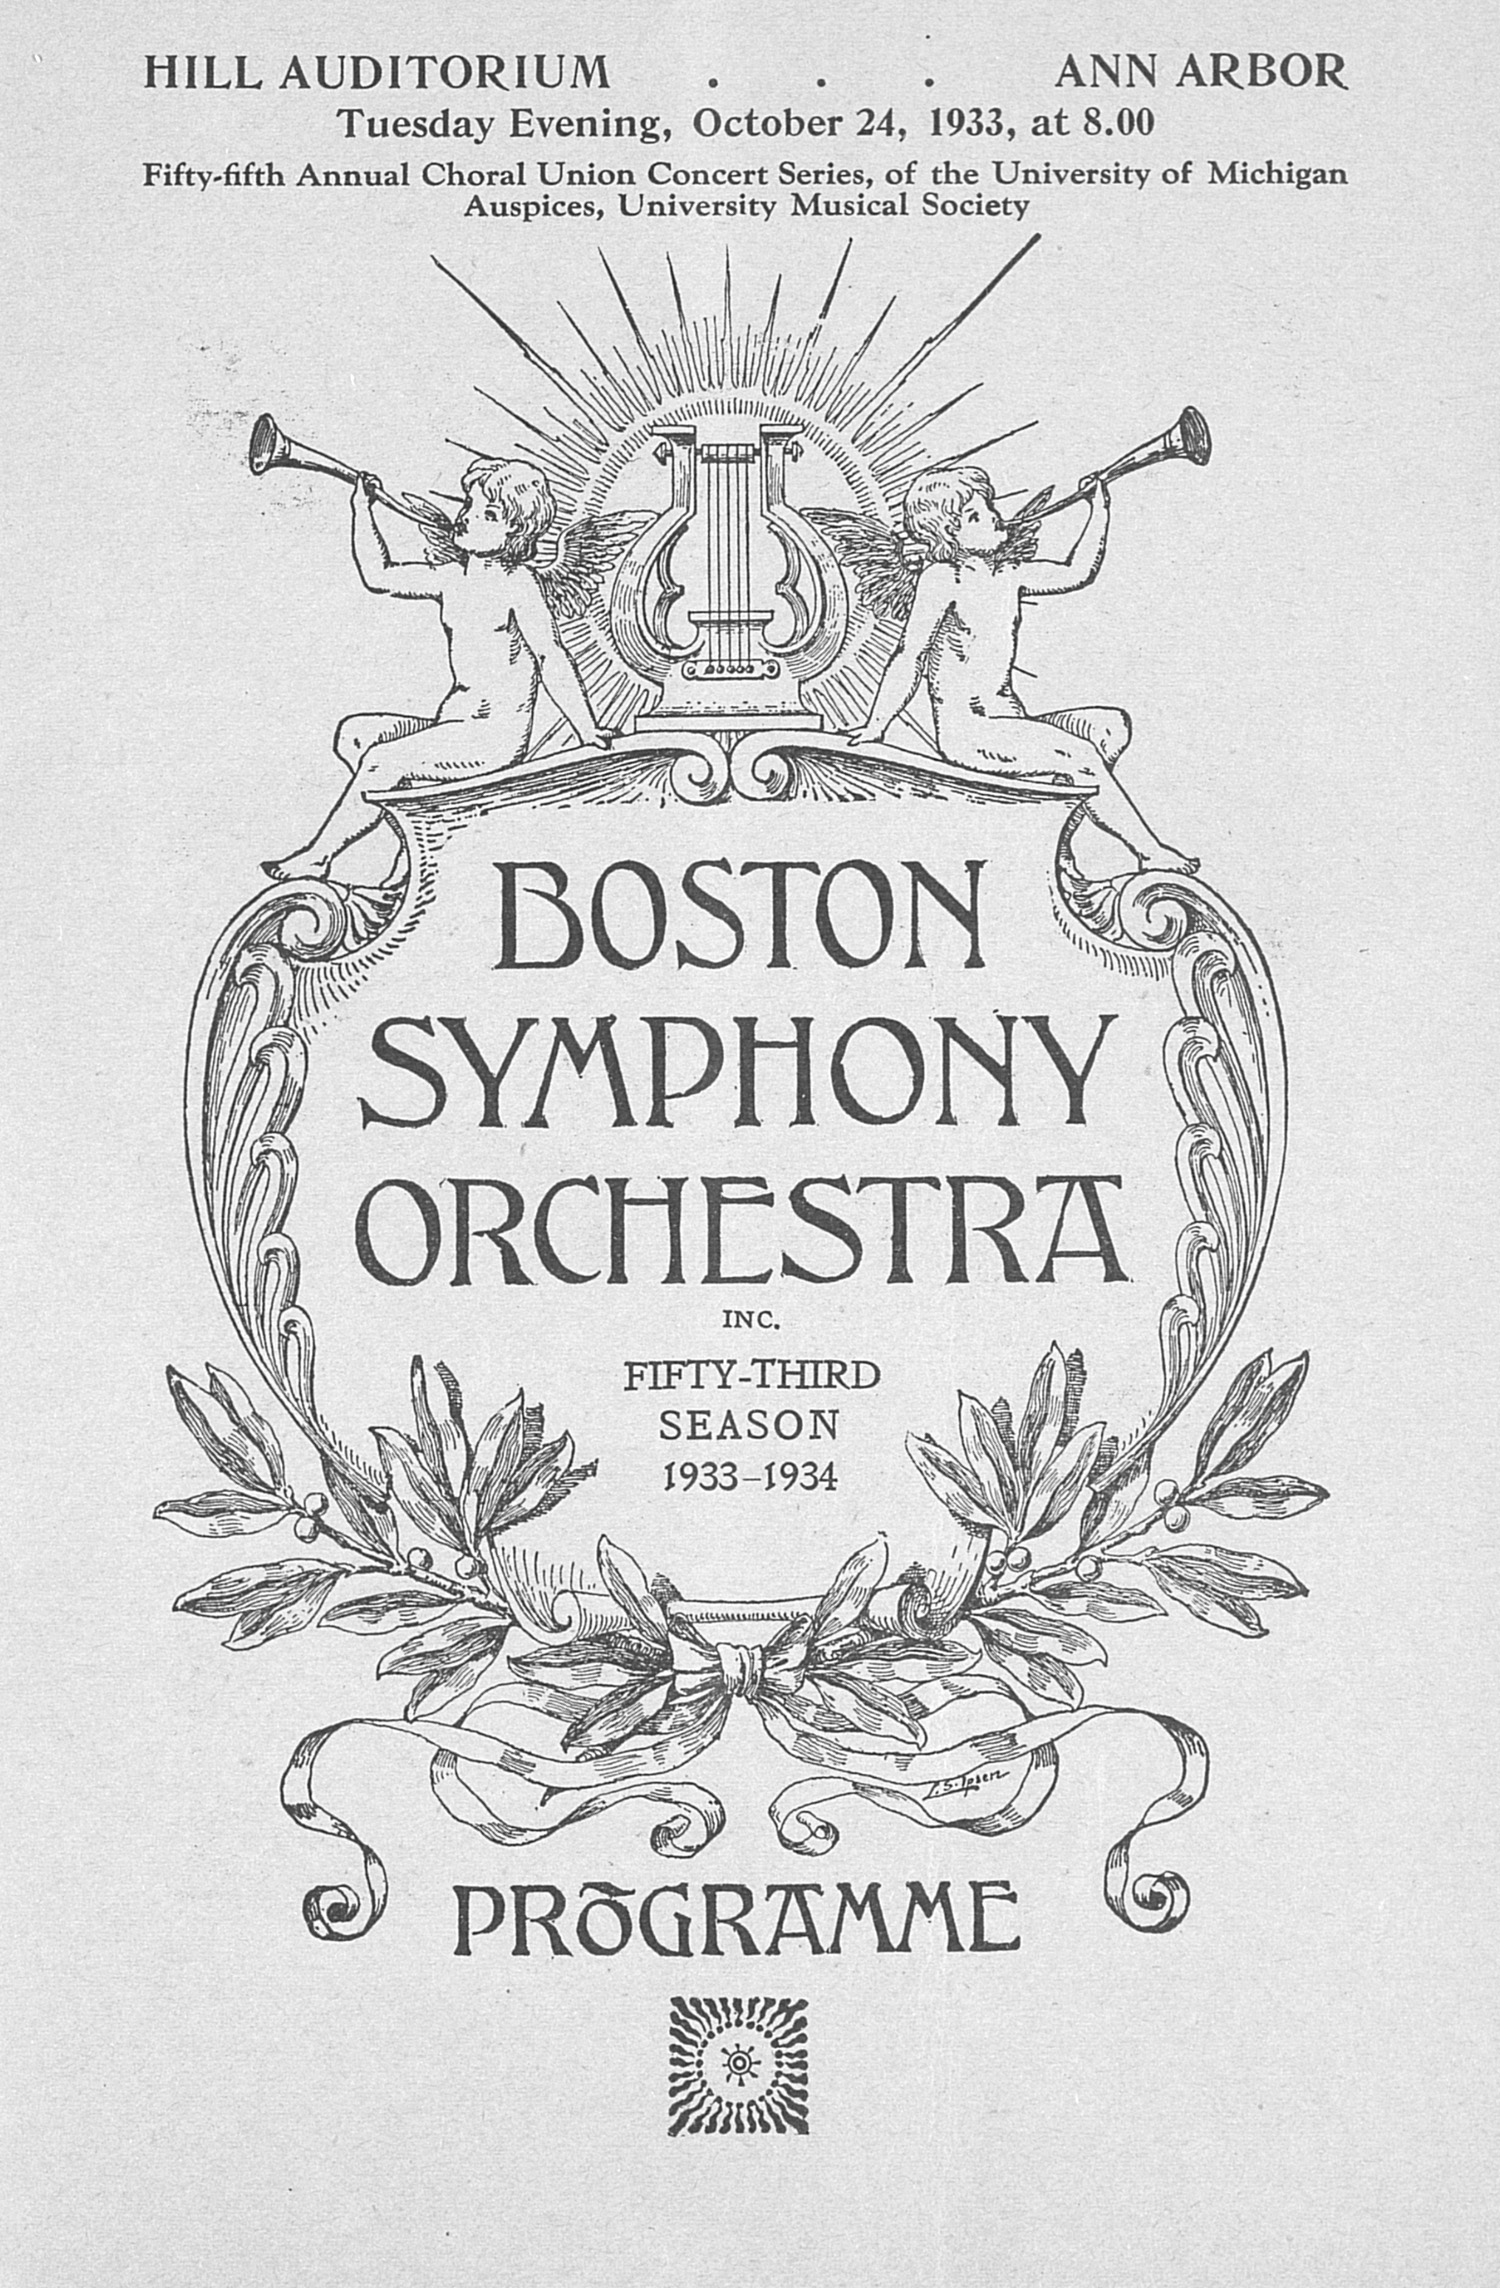 UMS Concert Program, October 24, 1933: Fifty-fifth Annual Choral Union Concert Series... image